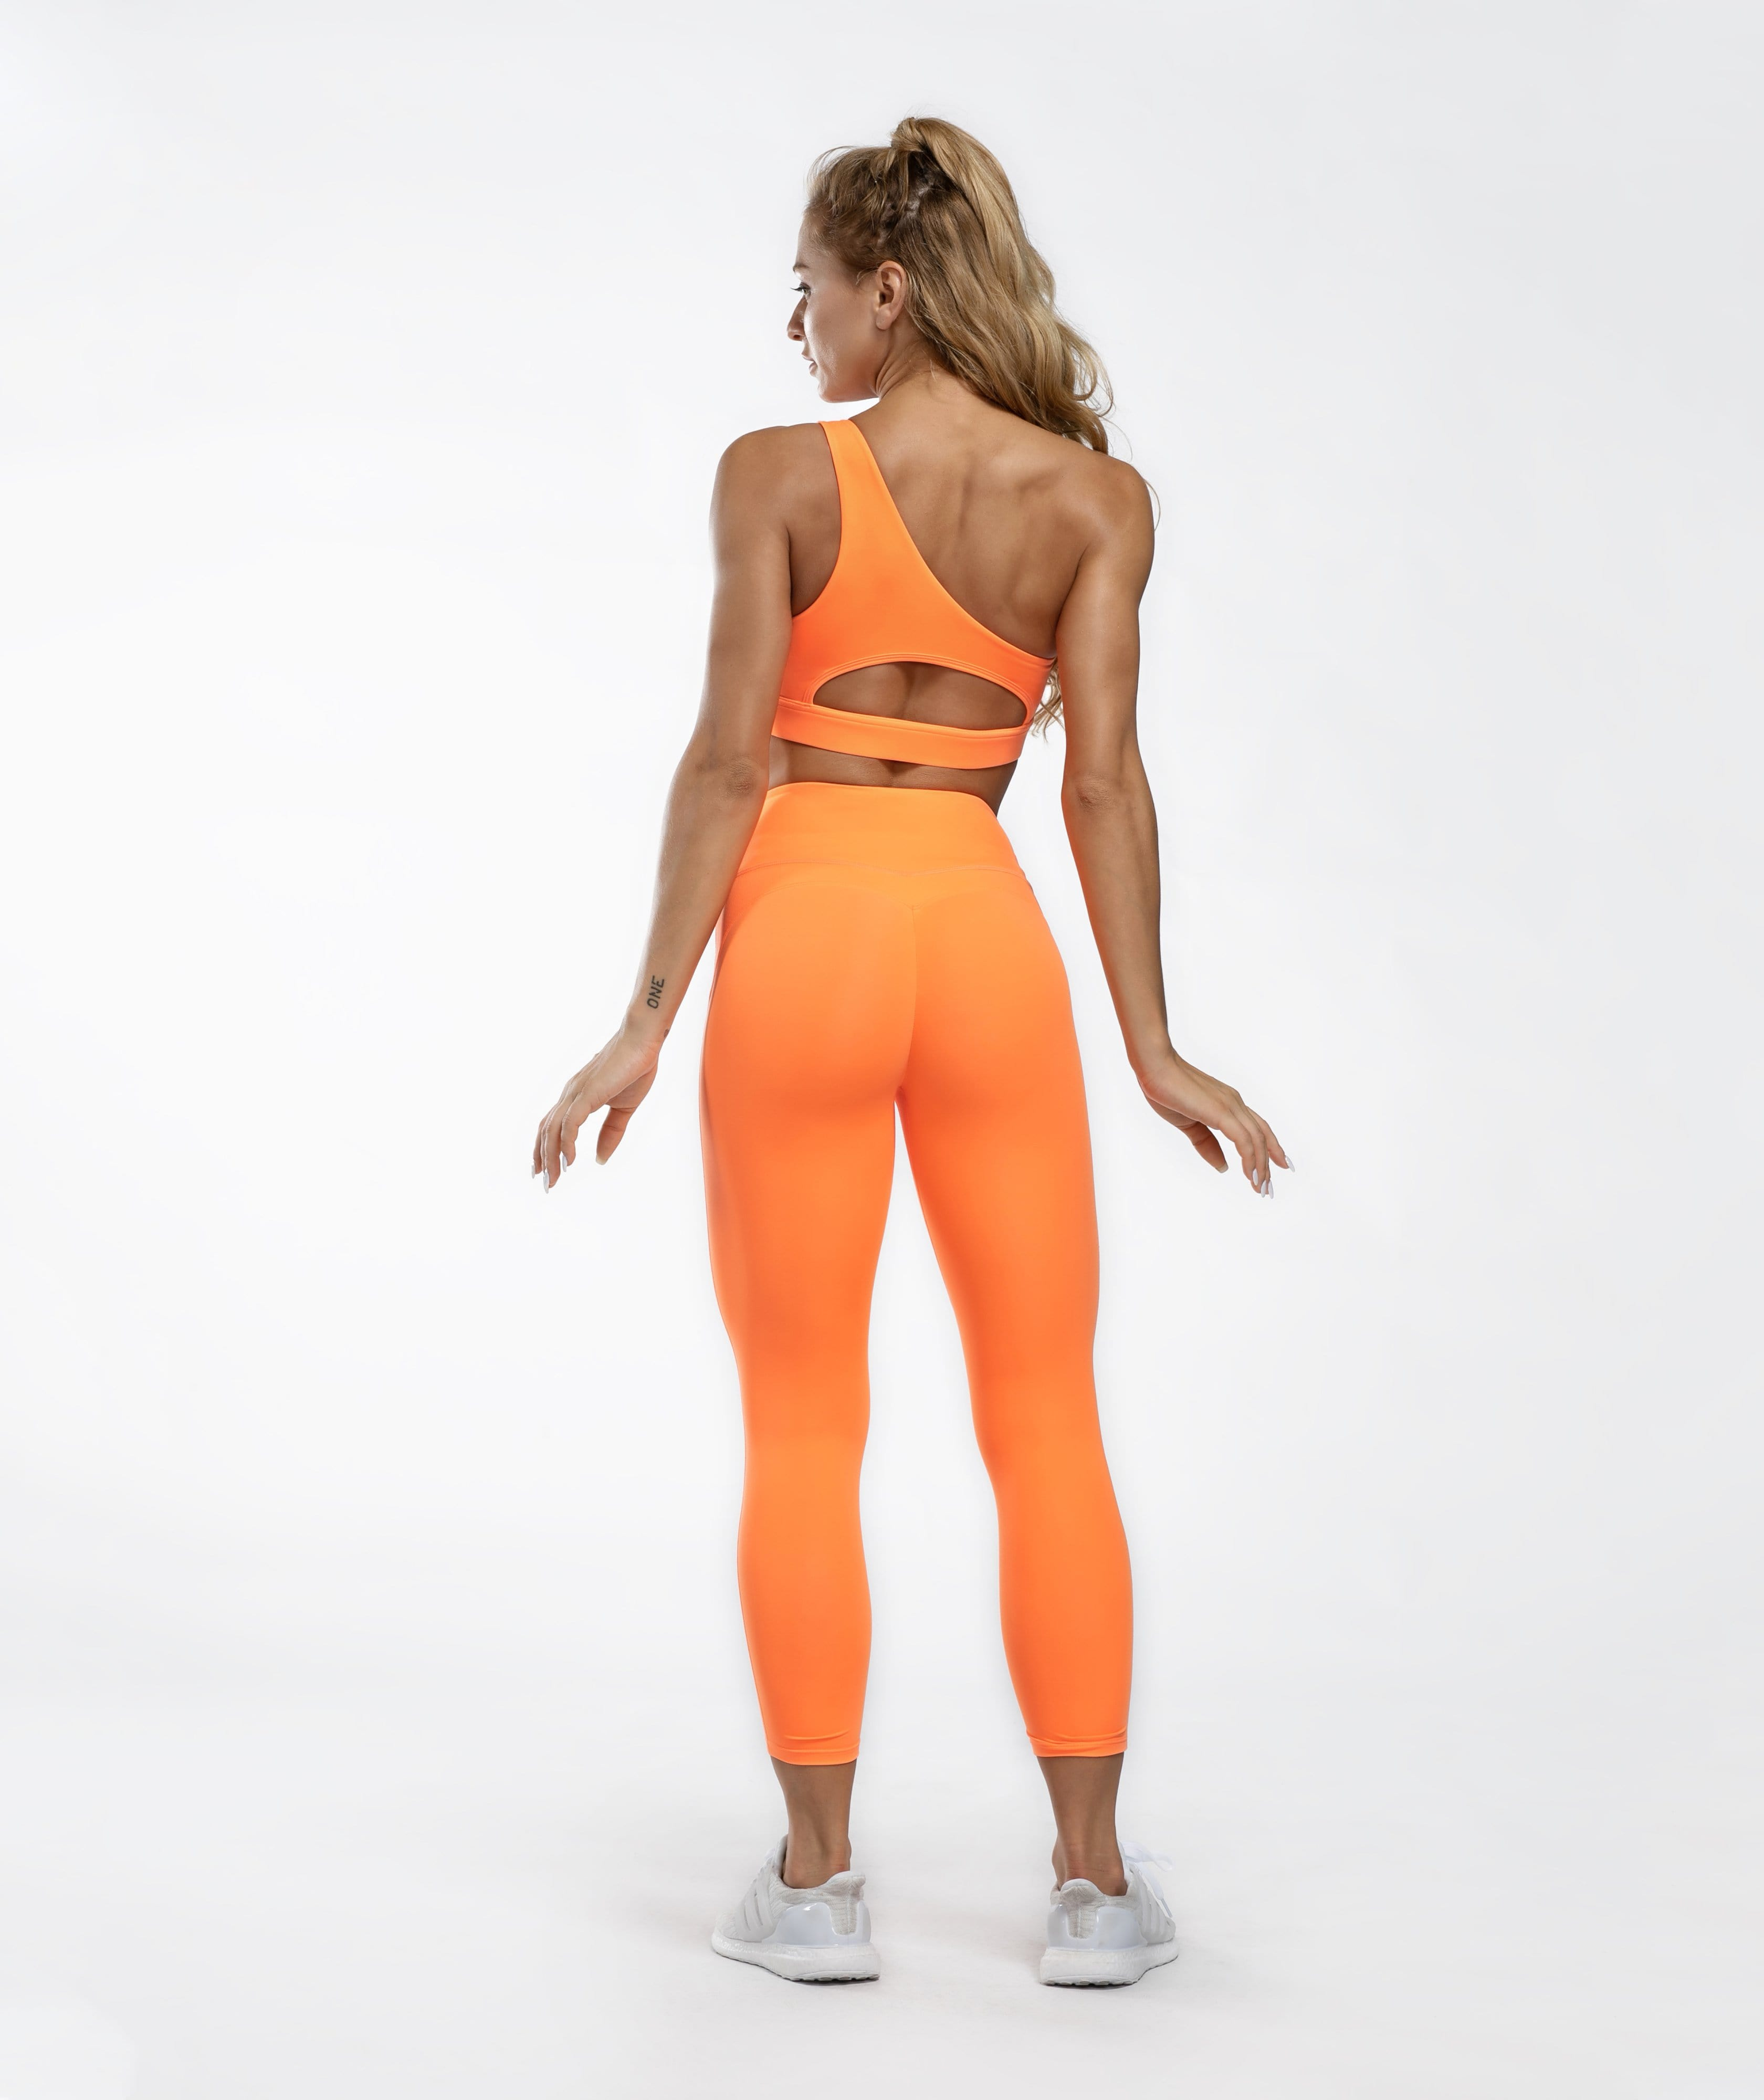 Honeypeach Cropped Leggings - Orange - Firm Abs Fitness